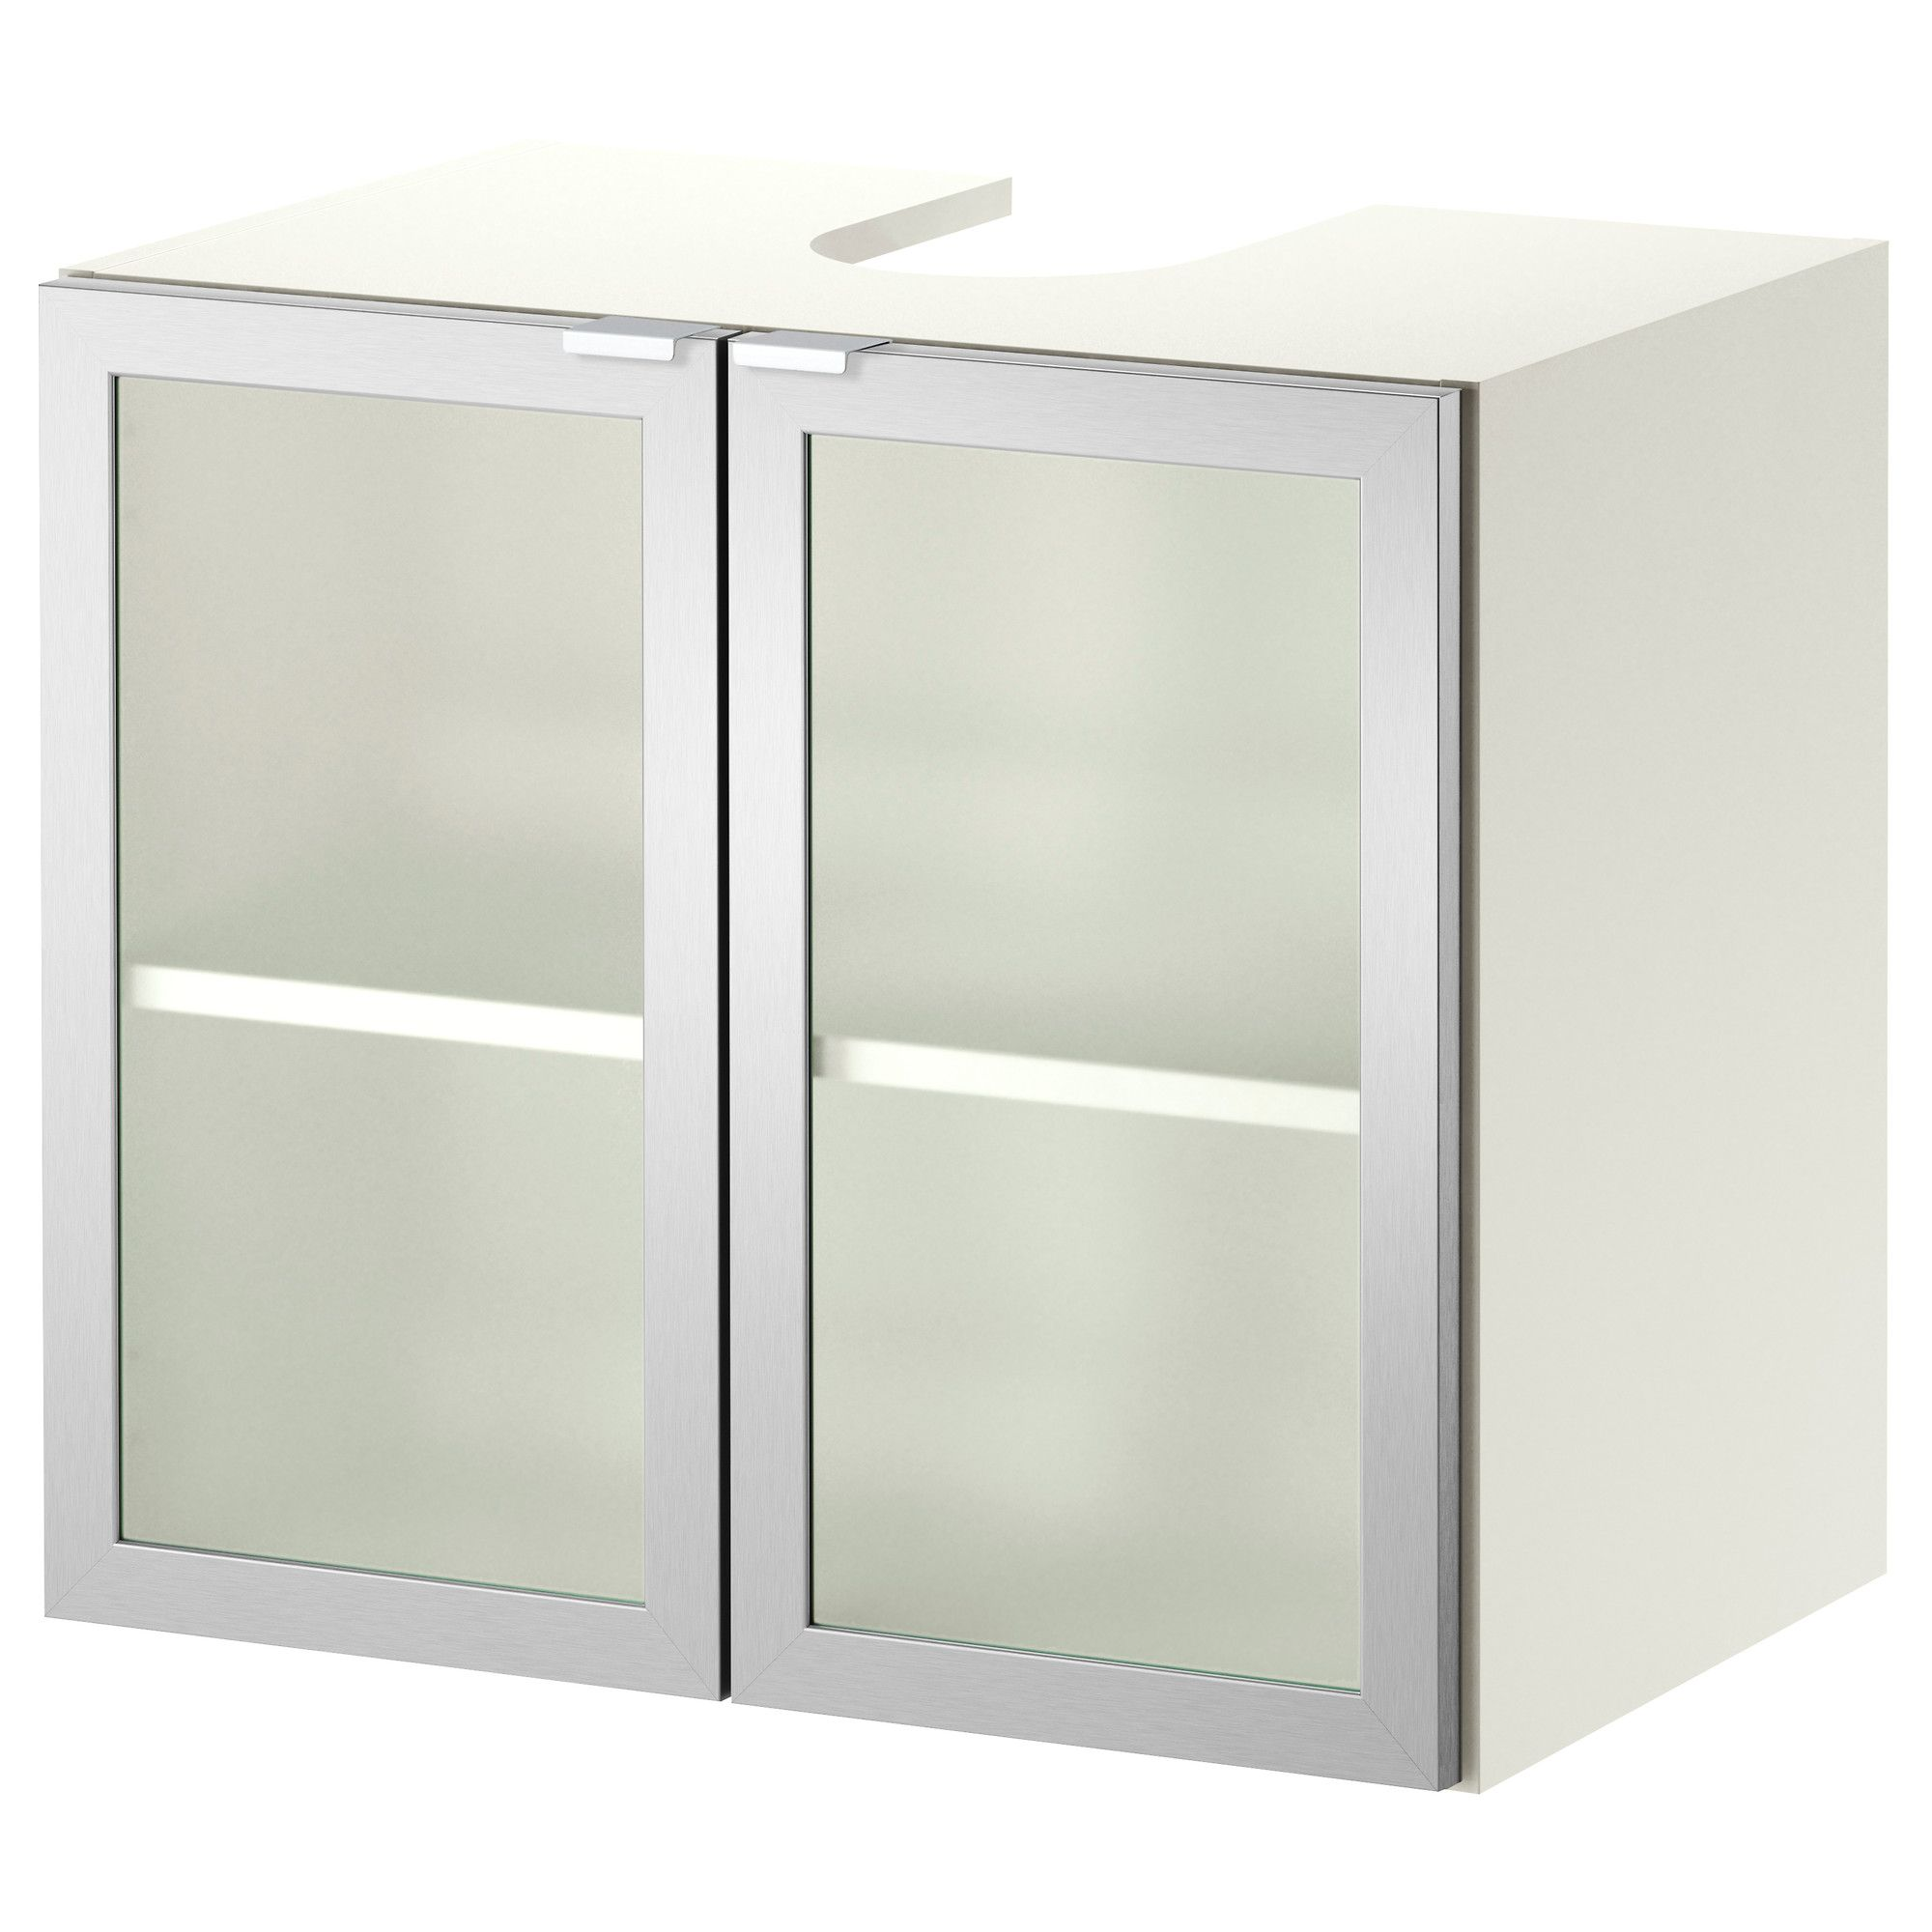 Apt 1 And Apt 2: LILLÅNGEN Sink Base Cabinet With 2 Doors   White/